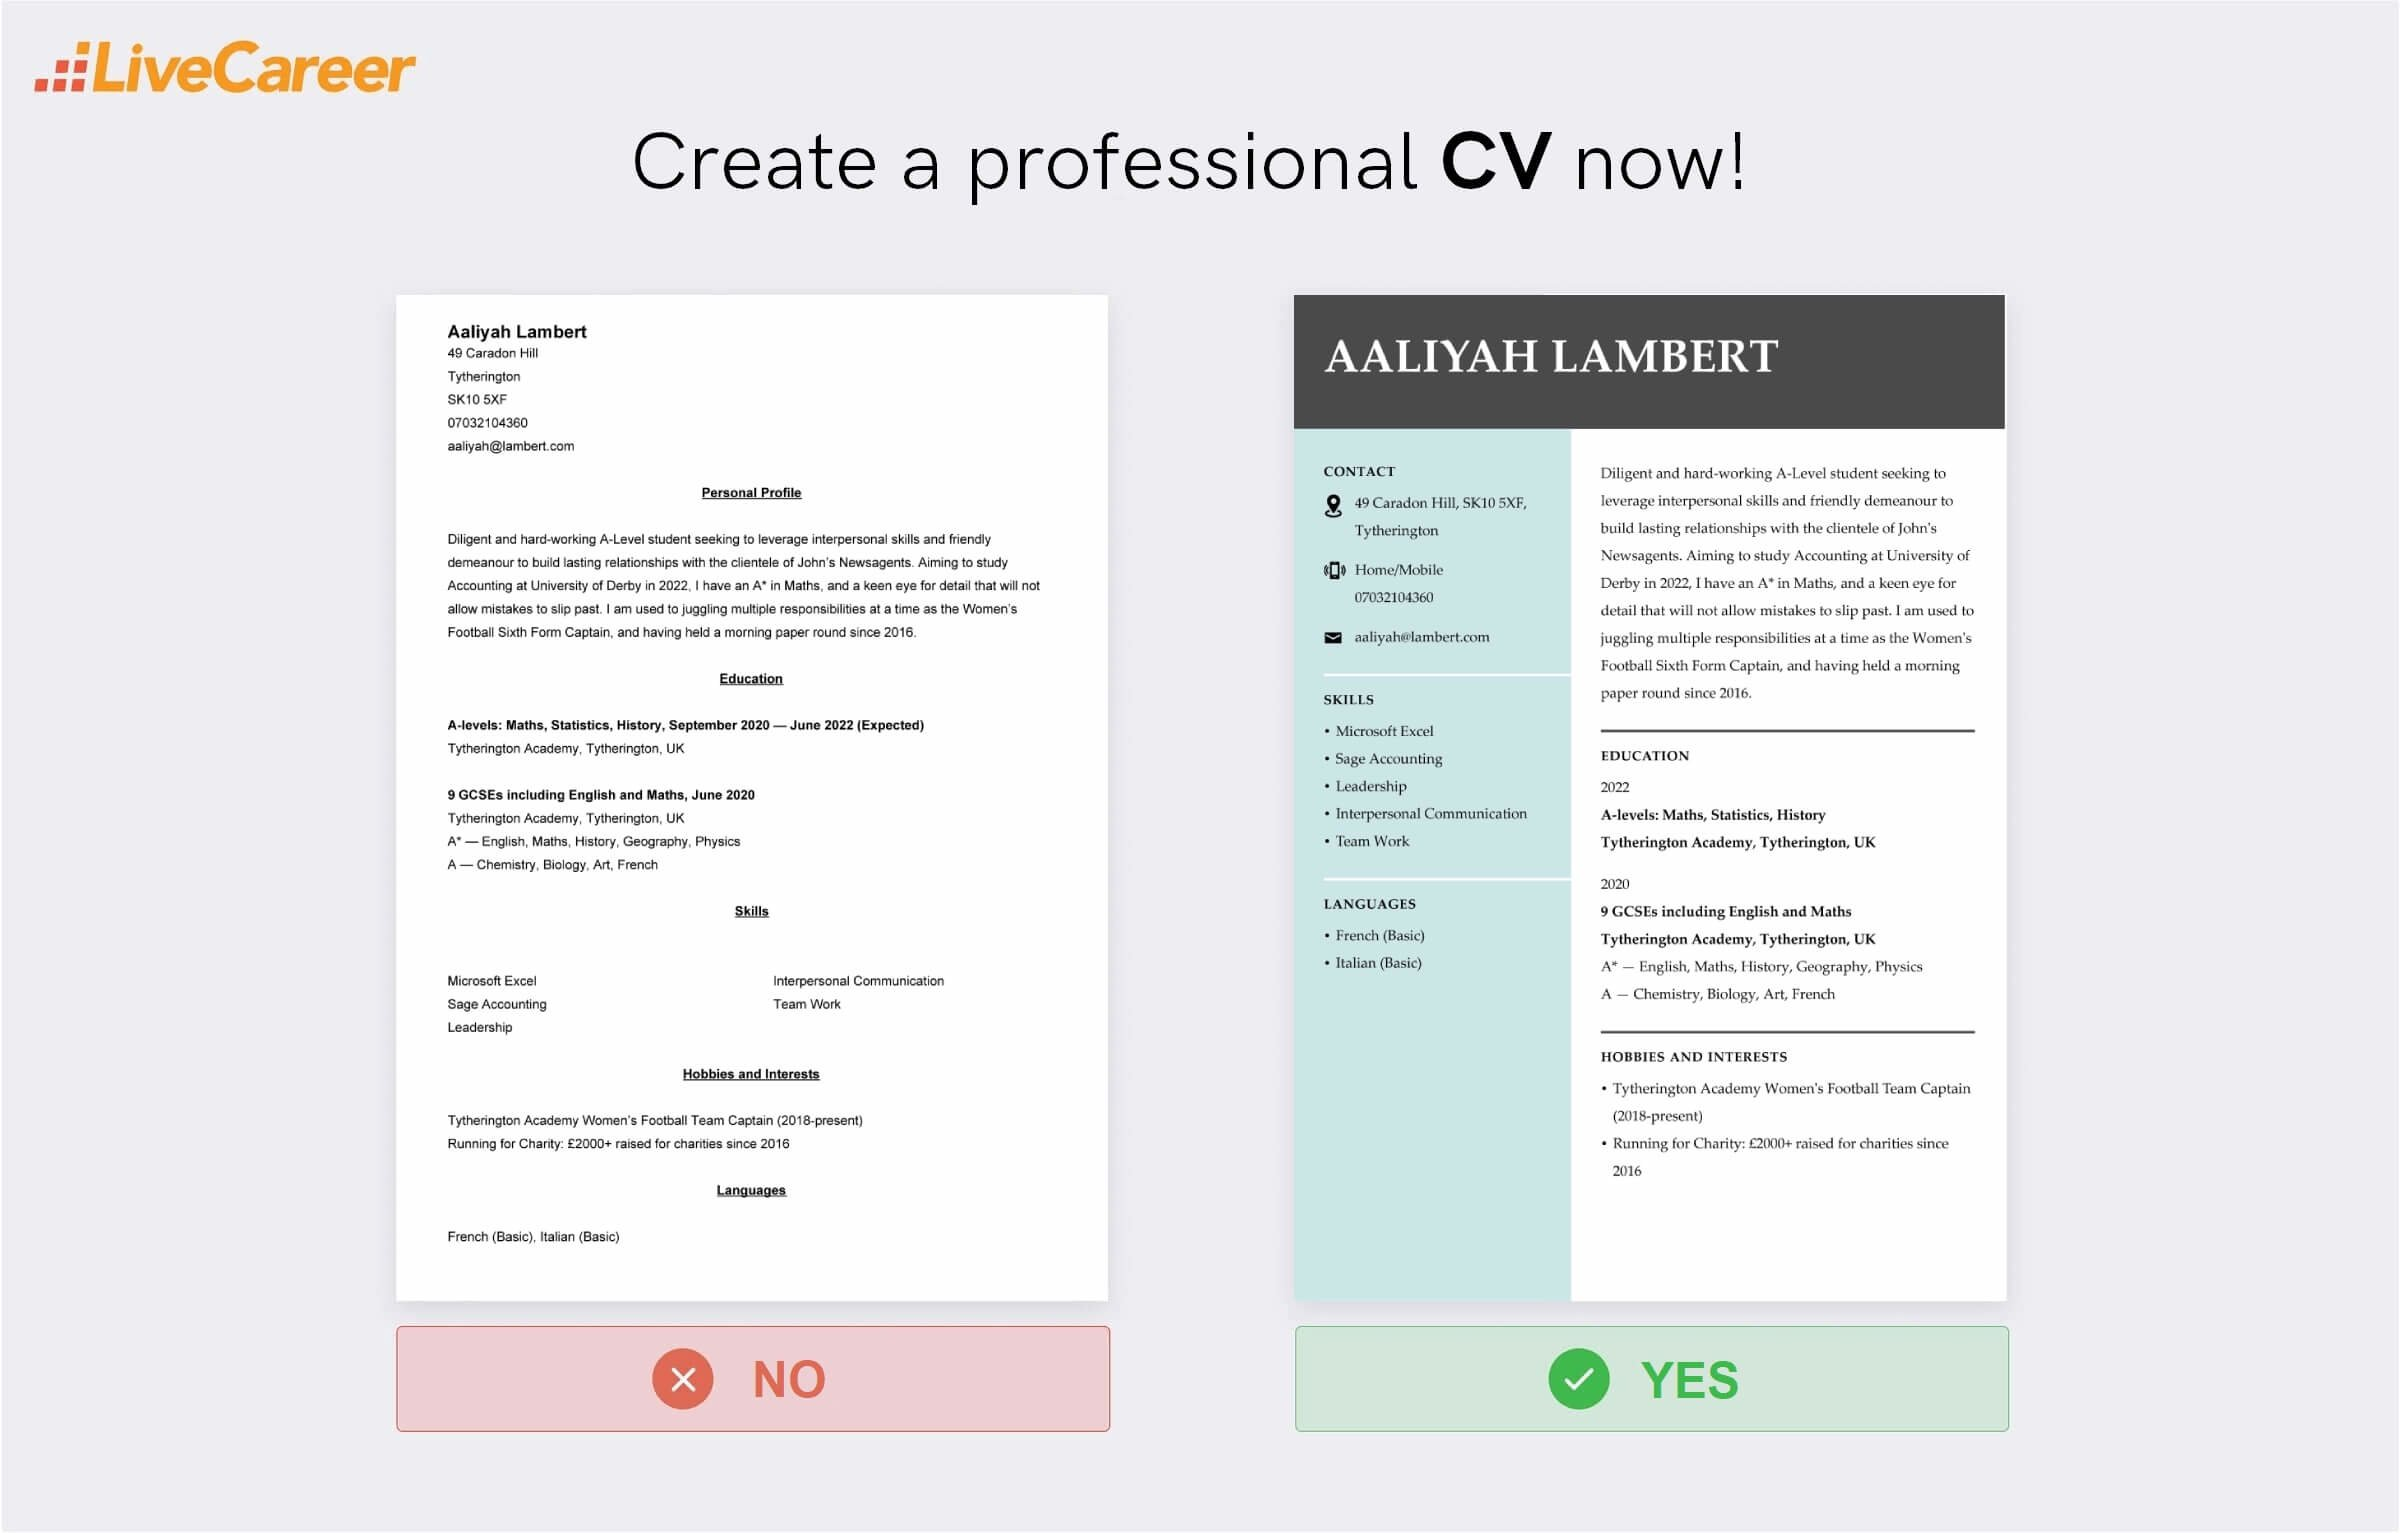 CV for a 16-year-old